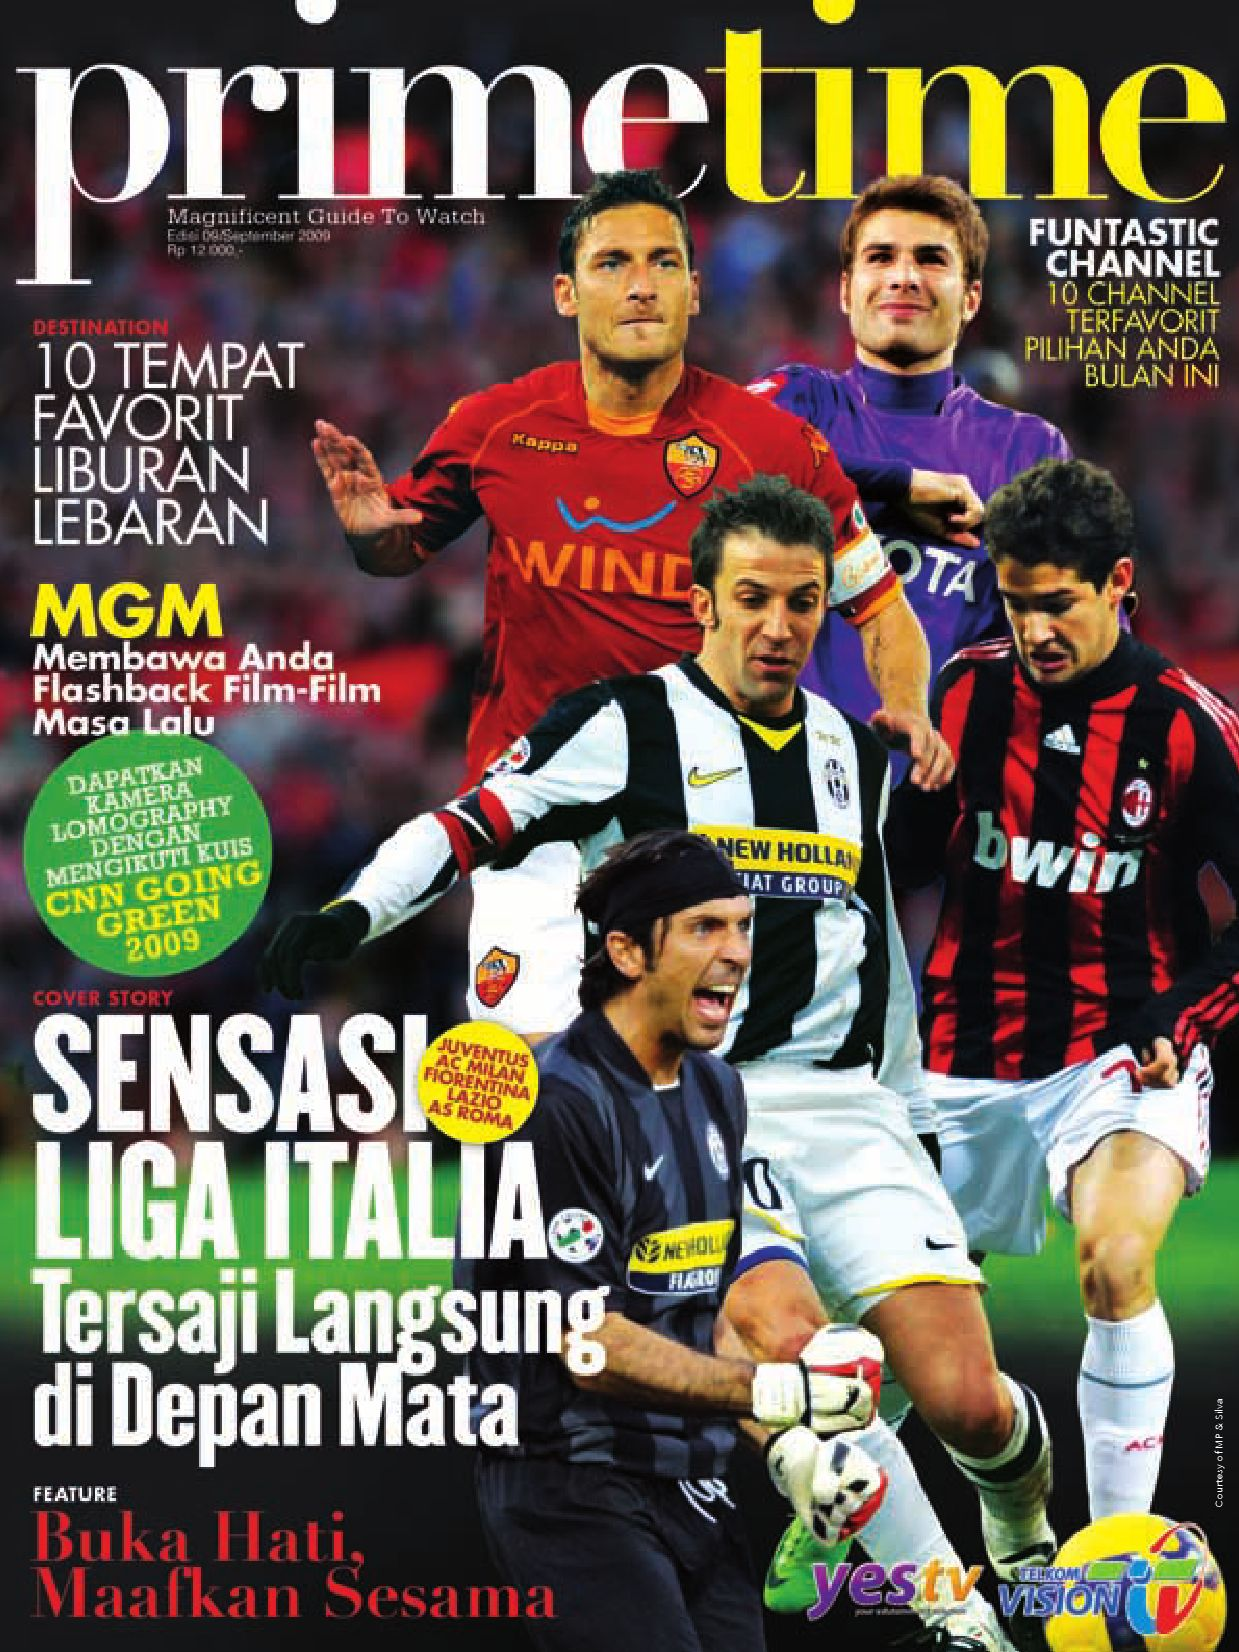 September 2009 Primetime Telkomvision By Indonusa Telemedia Issuu Vocer Belanja Di Garuda Golf Center Rp 4750000